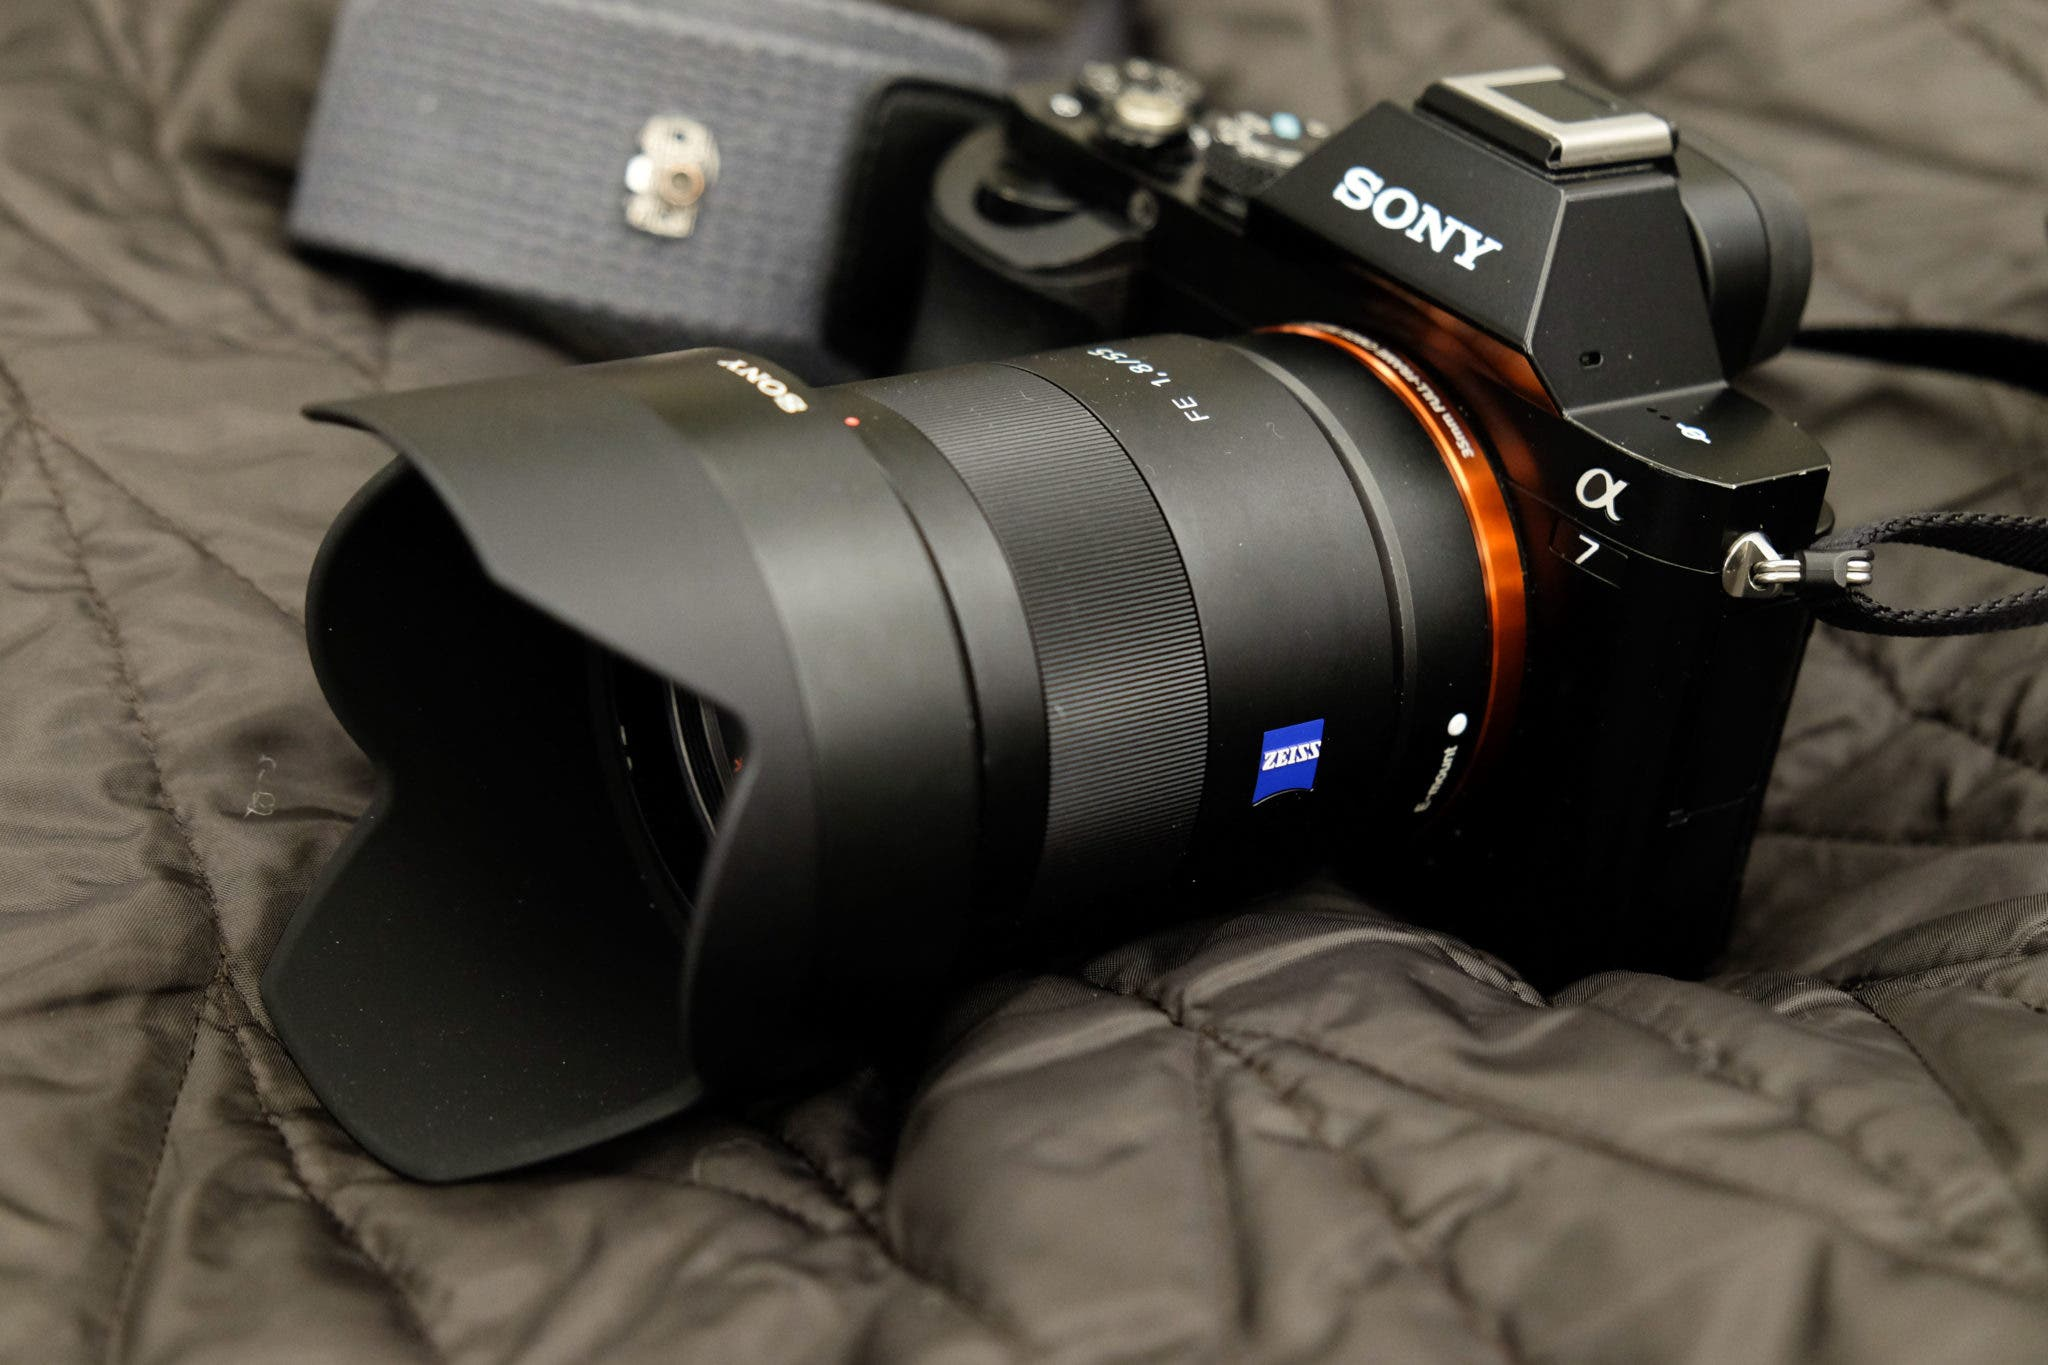 The 10 Best Lenses According to DXOMark For April 2019